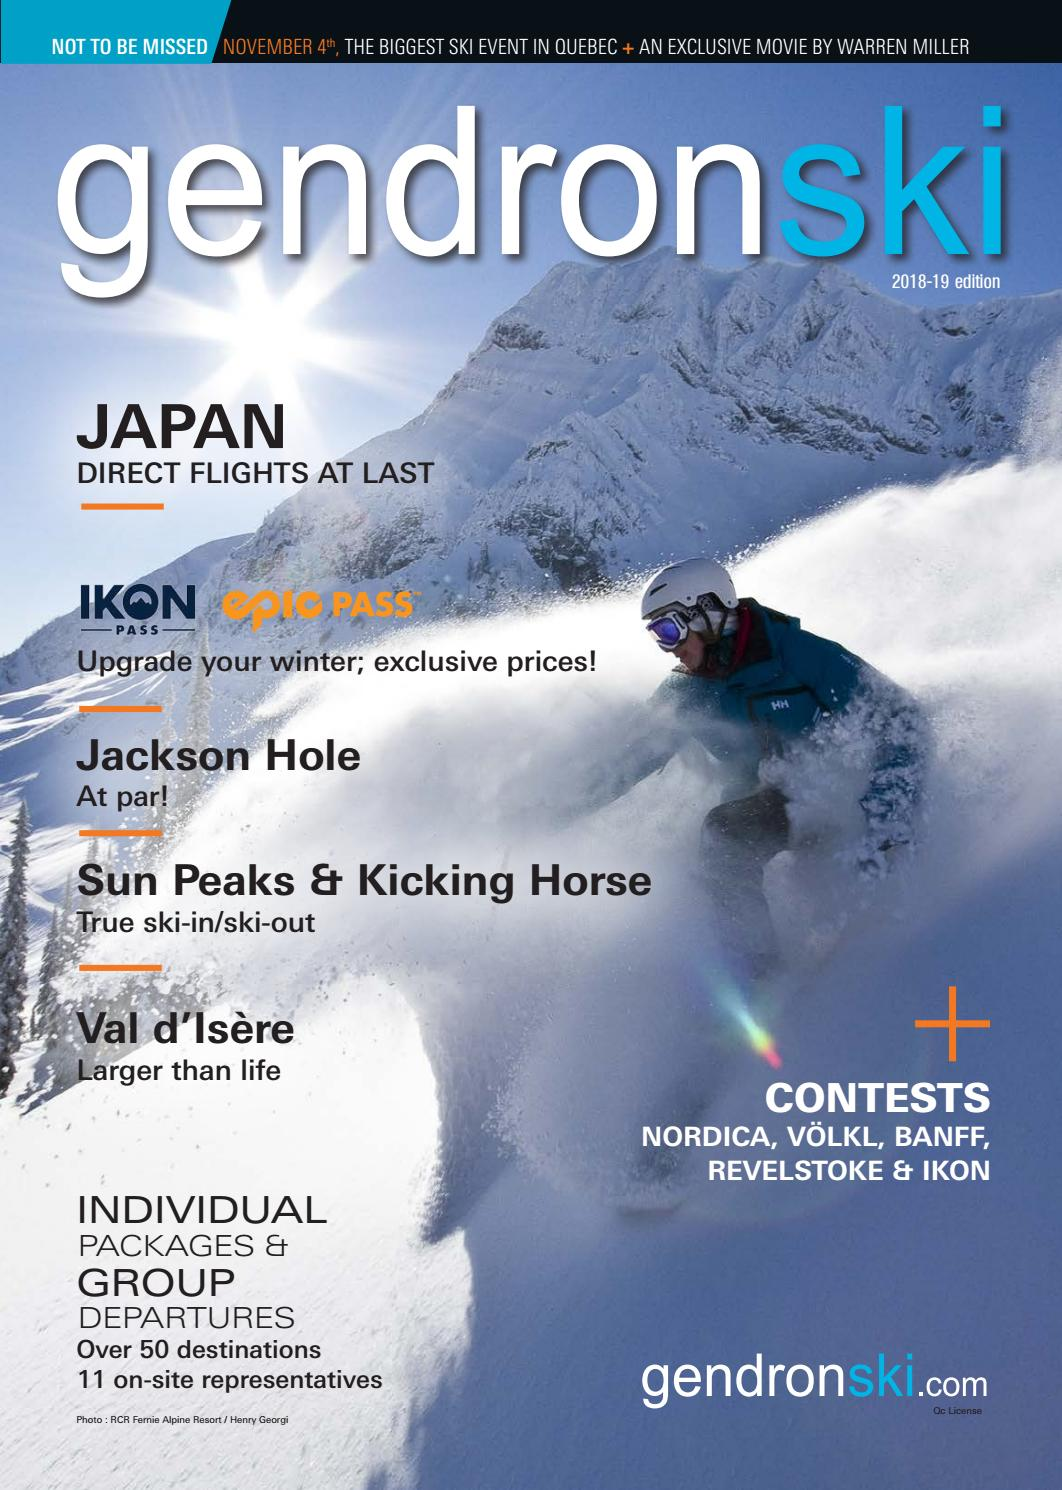 262bdf546337 2018-2019 Gendronski Magazine by Voyages Gendron - issuu